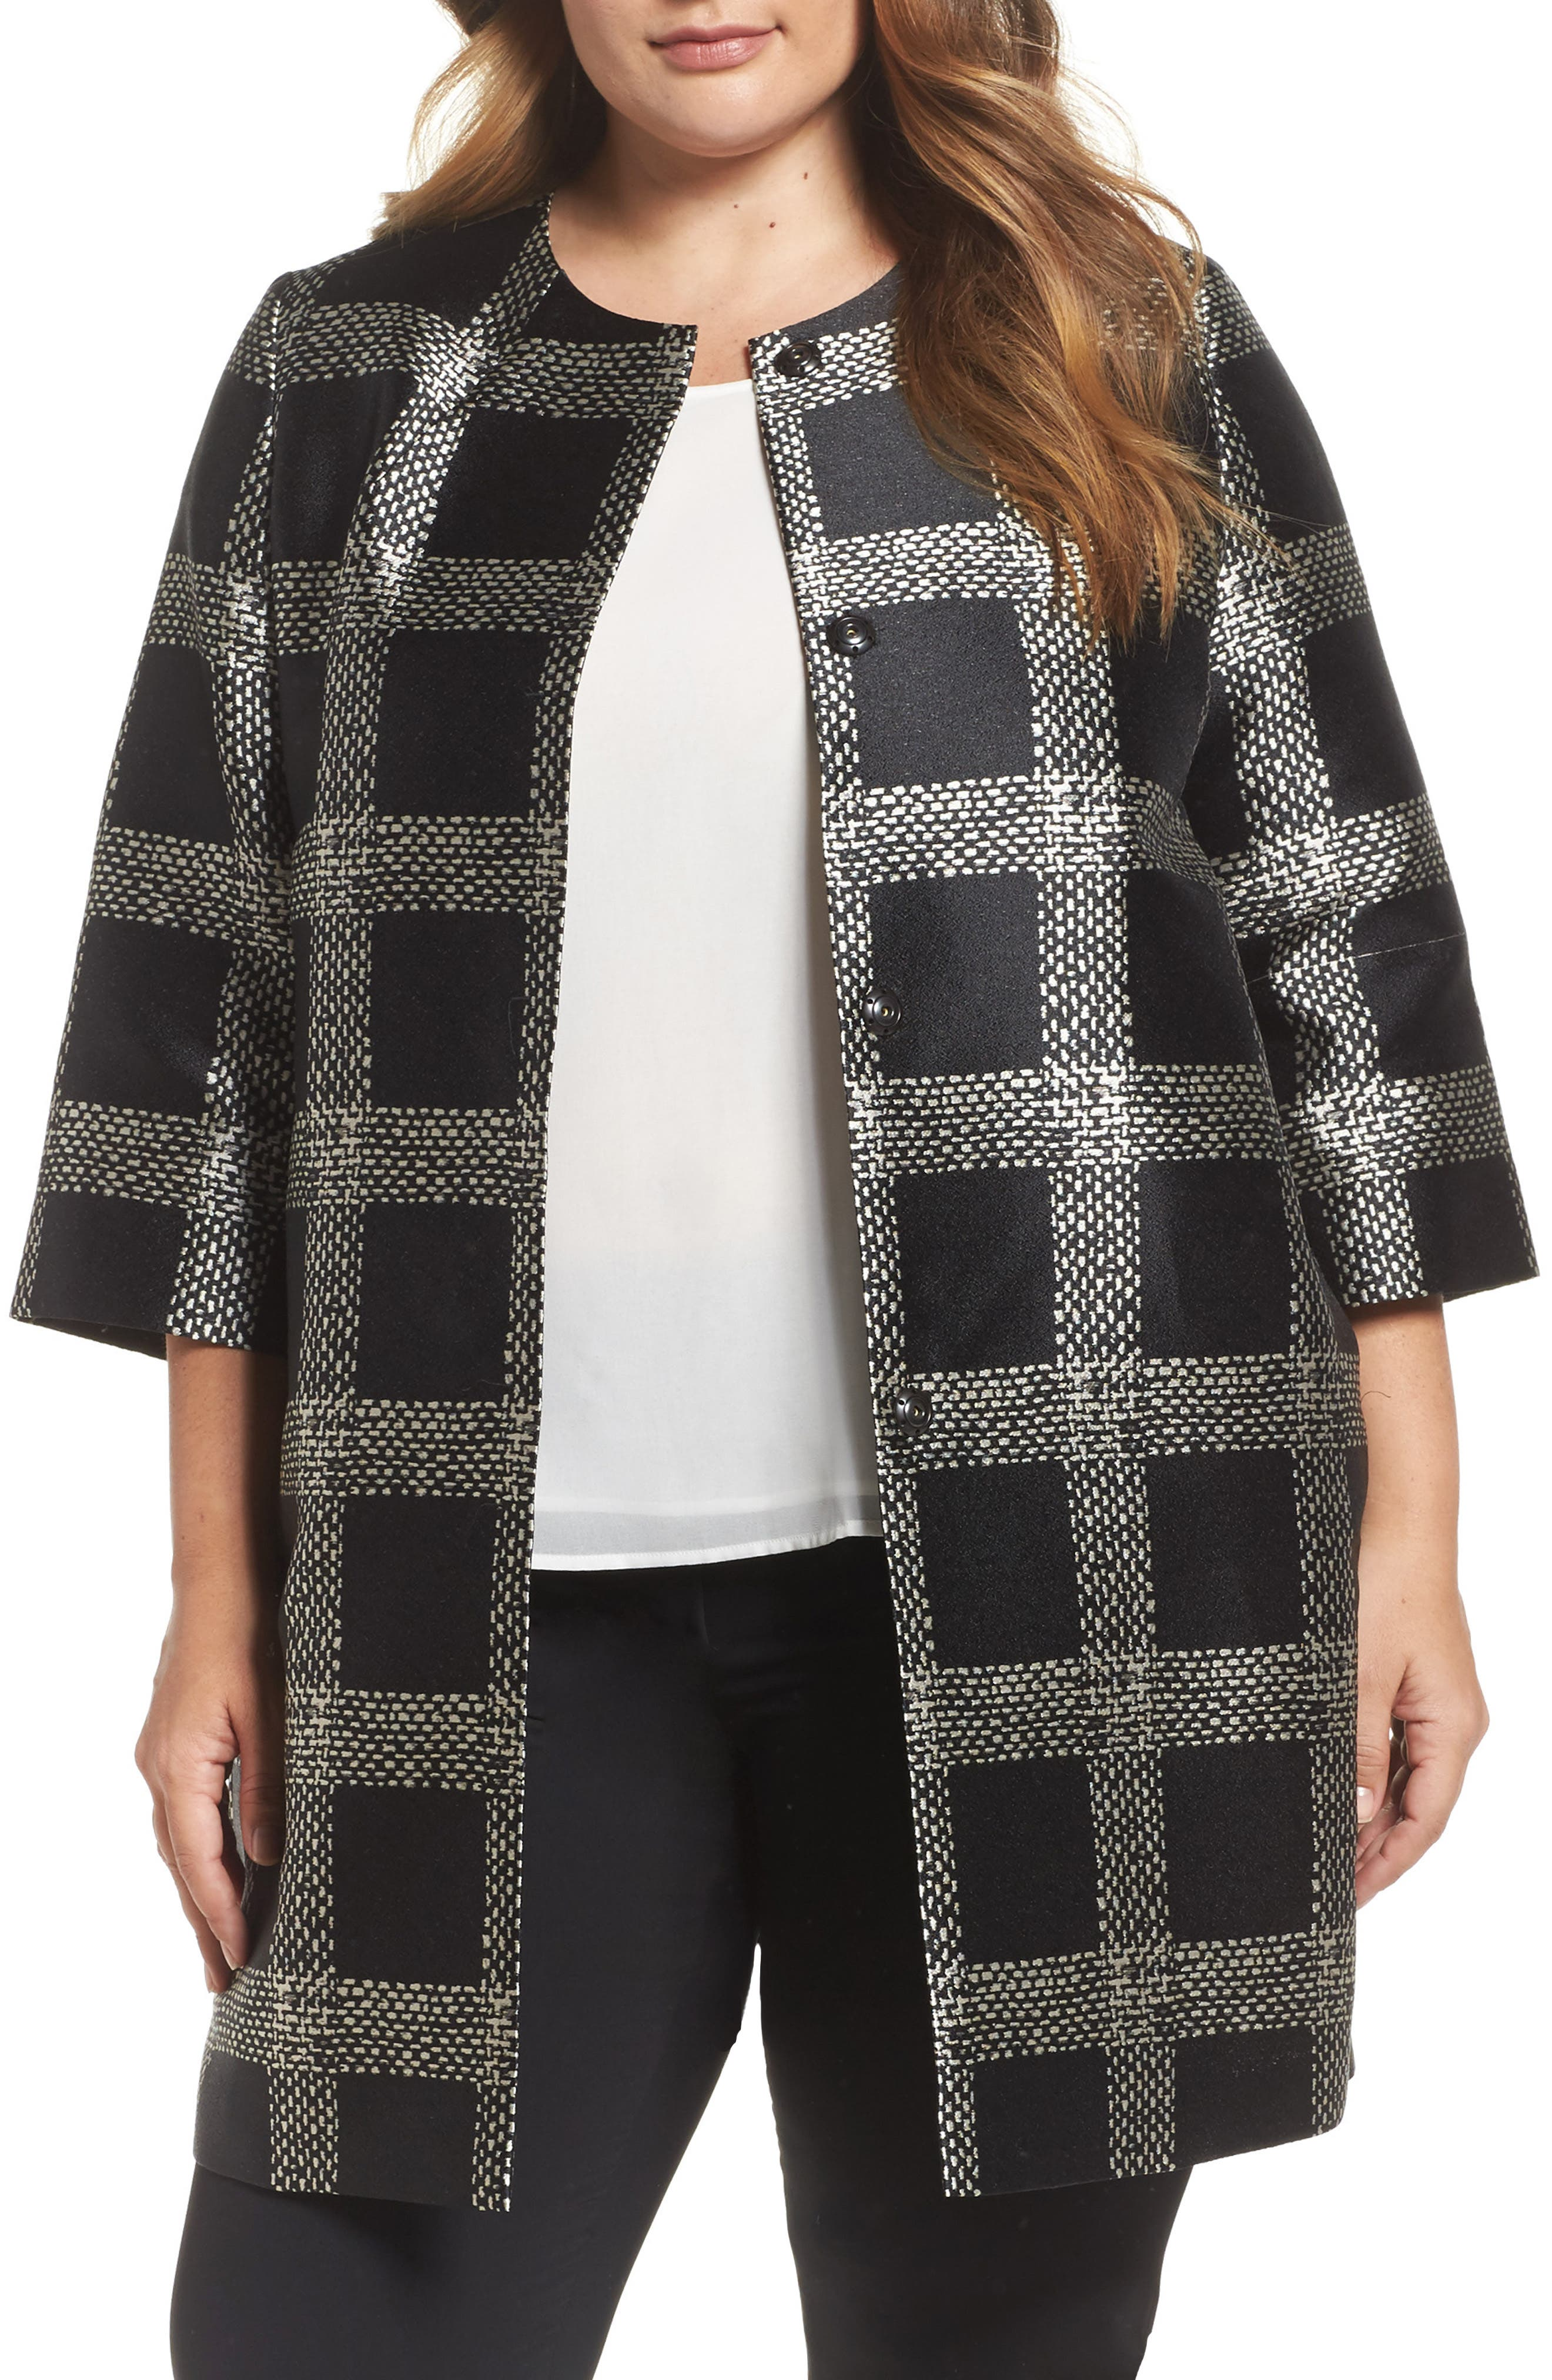 Noa Plaid Topper,                         Main,                         color, Black